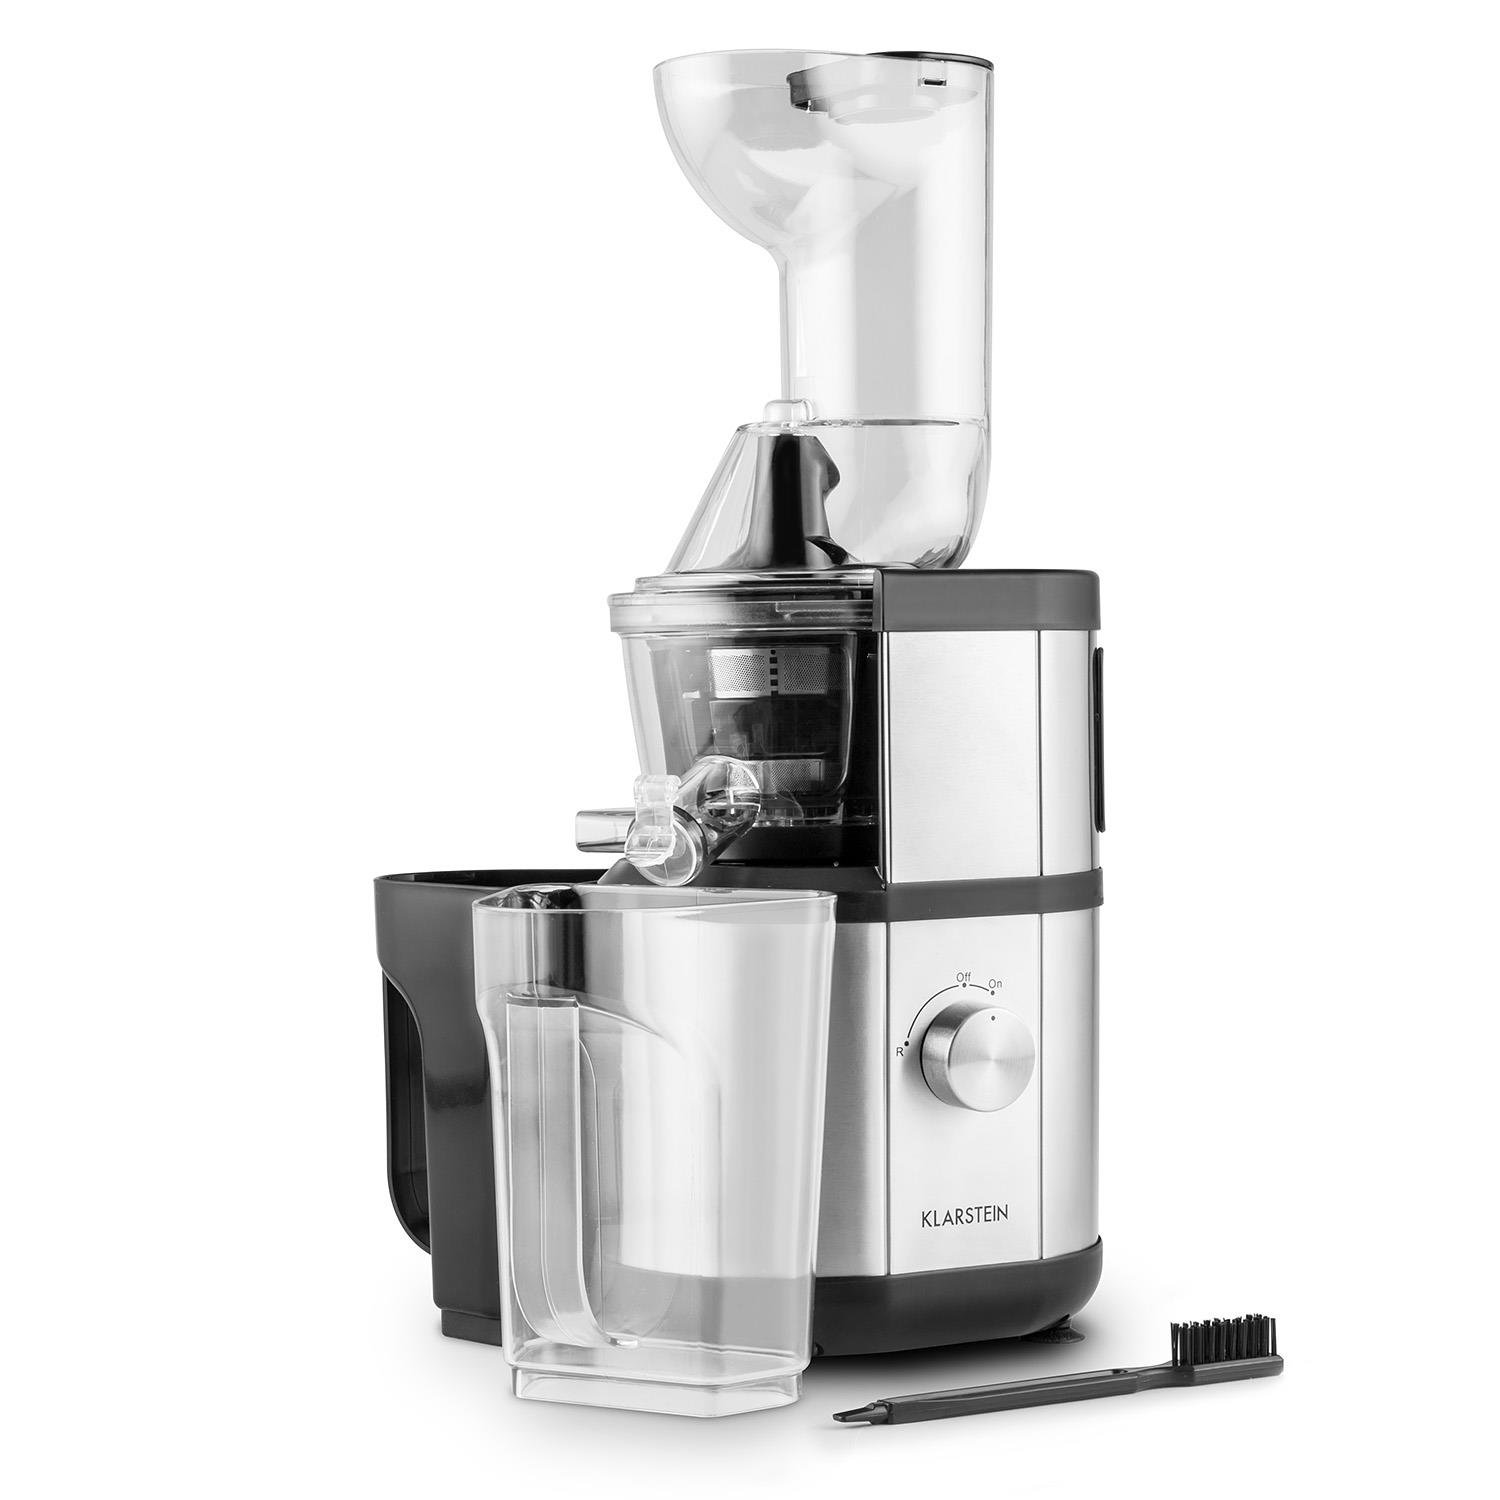 Enrico M Line Slow Juicer Reviews : Slow Juicer Test 2017: Die besten Slow Juicer im vergleich